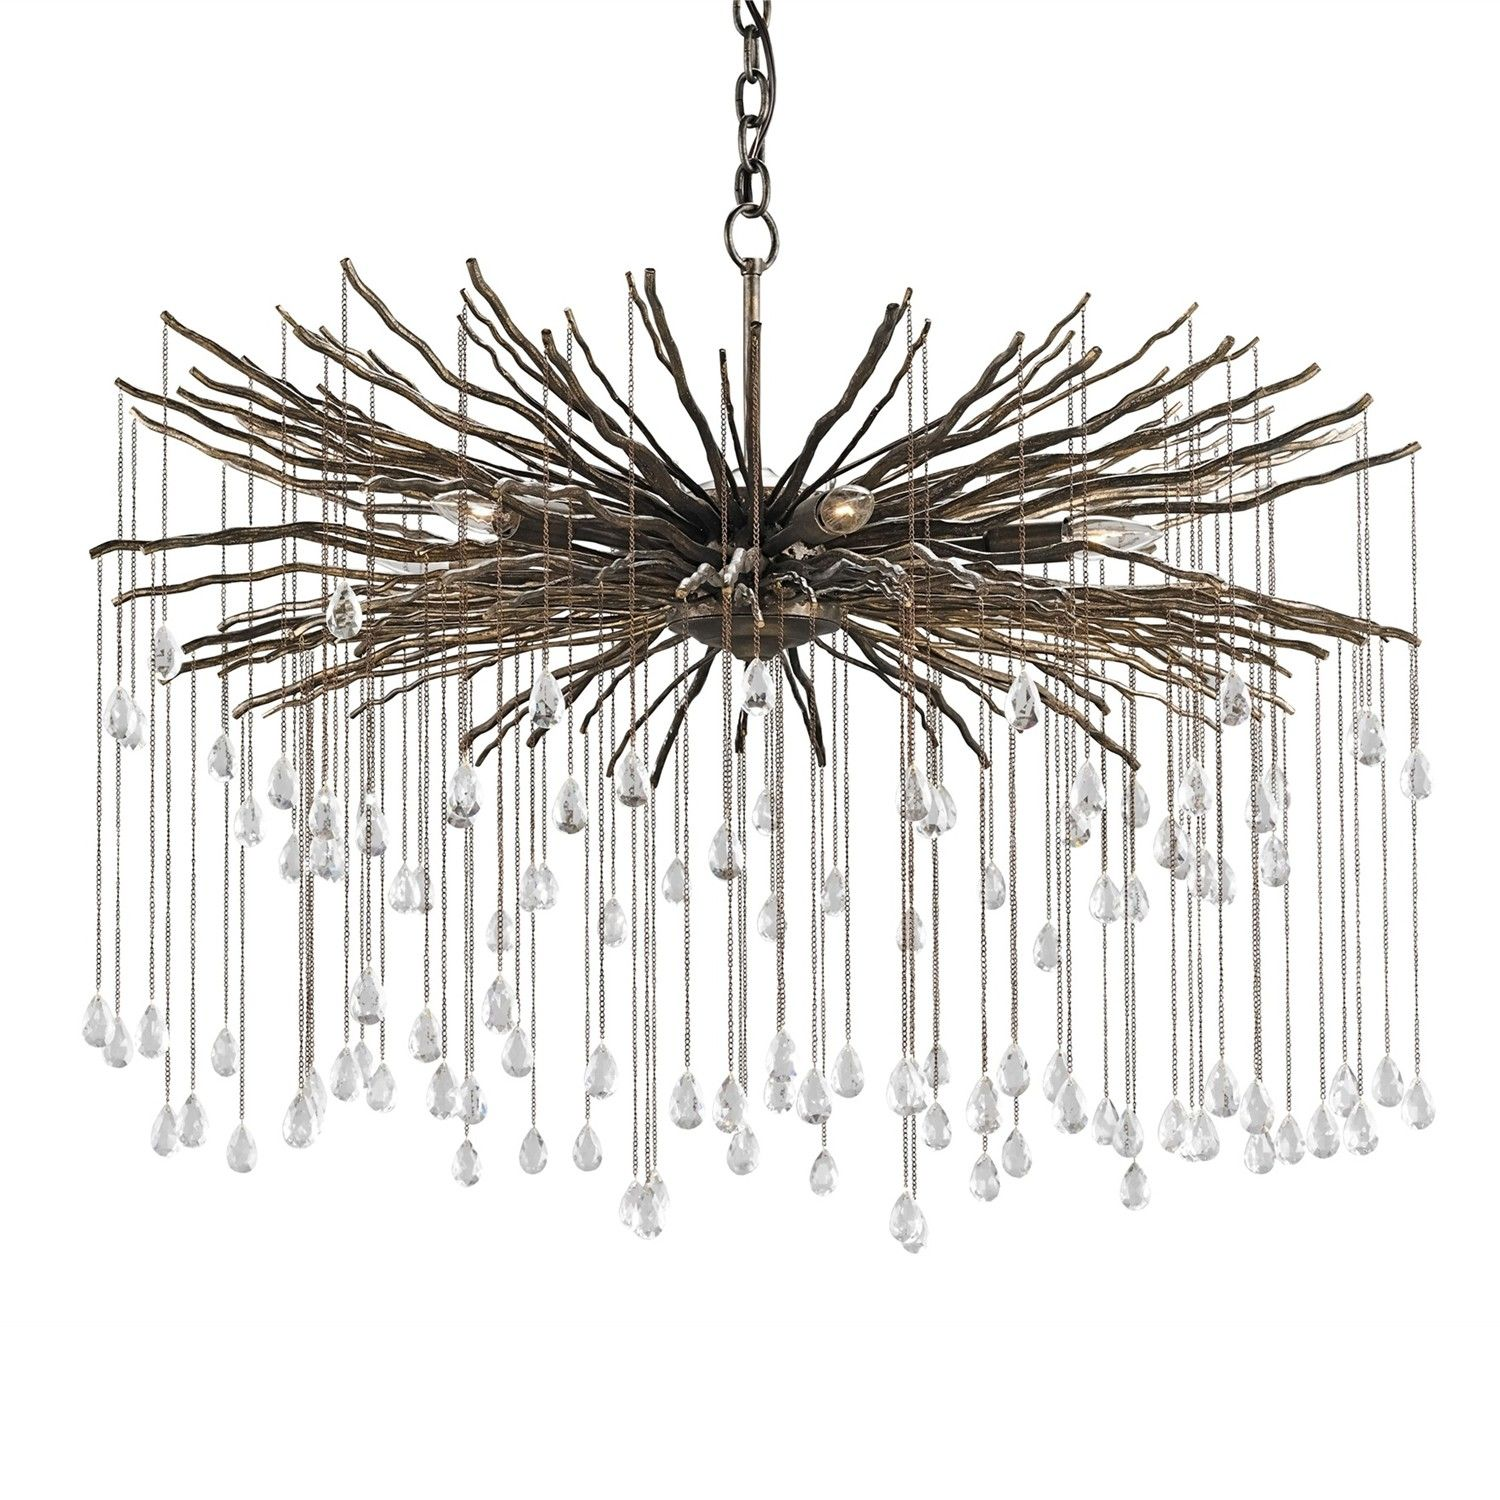 Currey And Company Fen Chandelier Candelabra Inc Twig Chandelier Crystal Ceiling Lamps Small Chandelier